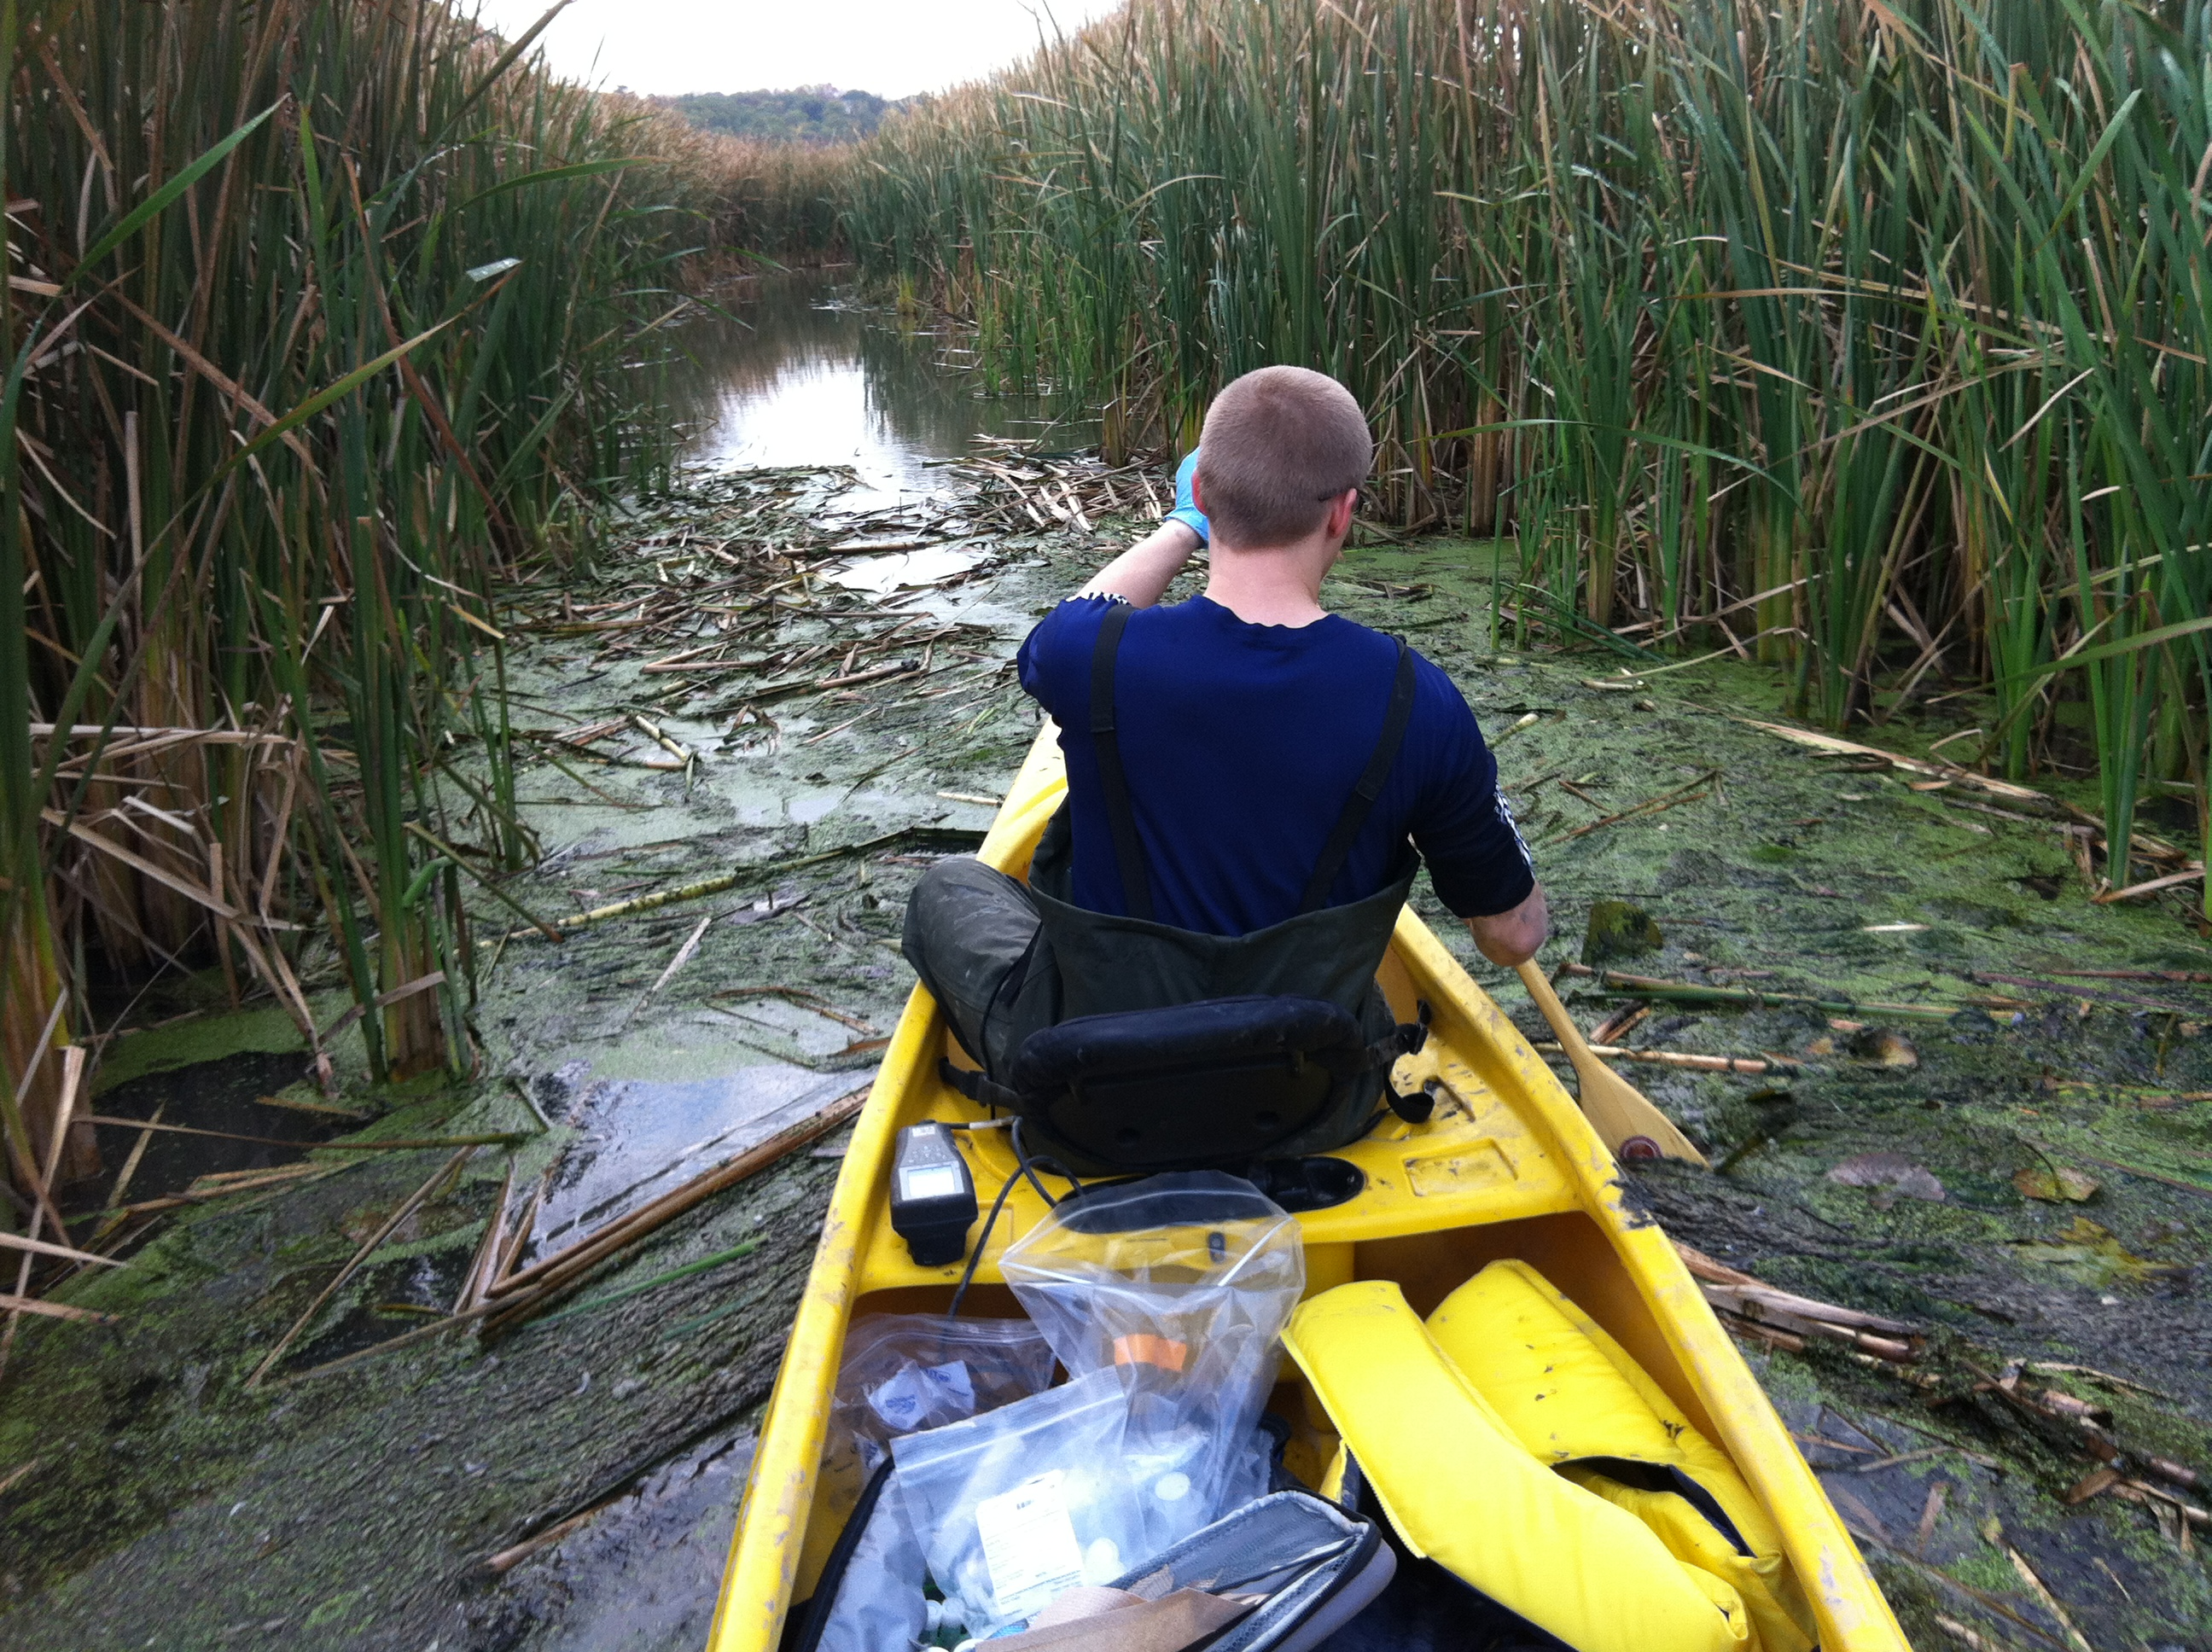 Chris Parsons on a sampling trip in Coot's Paradise near Toronto.